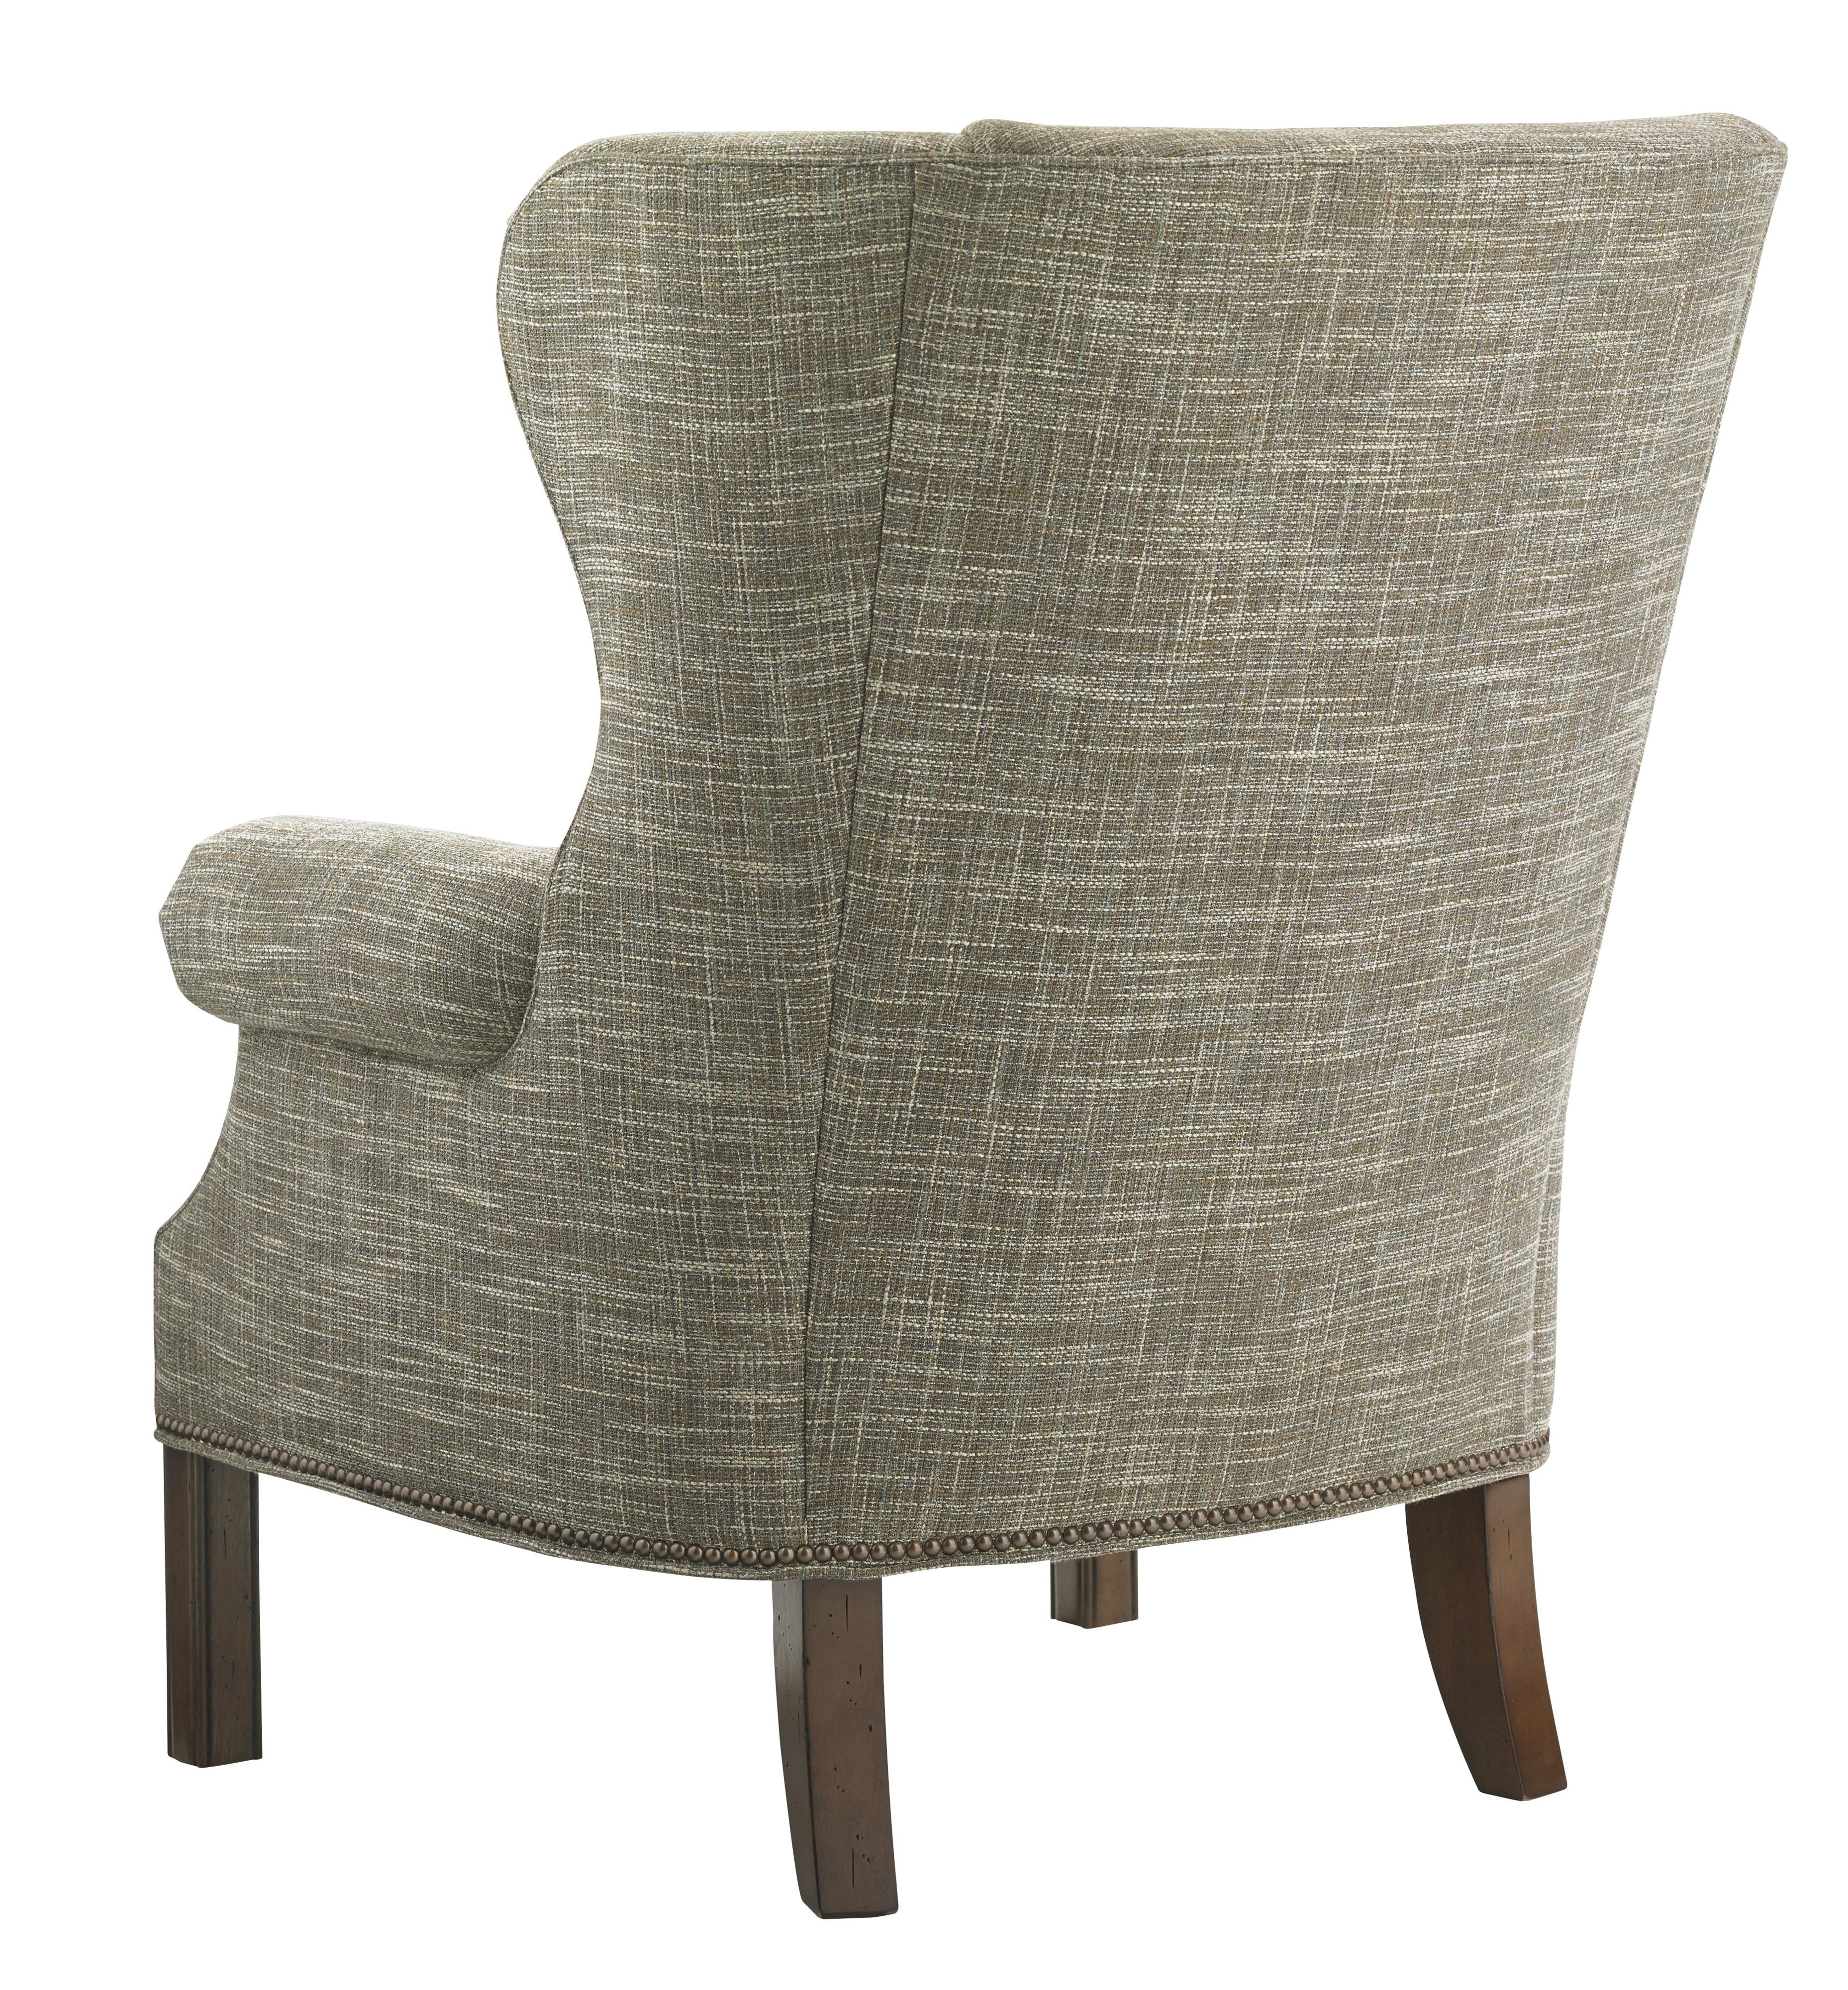 Leather Sofa Repairs In Coventry: Lexington Coventry Hills Logan Transitional Wing Chair